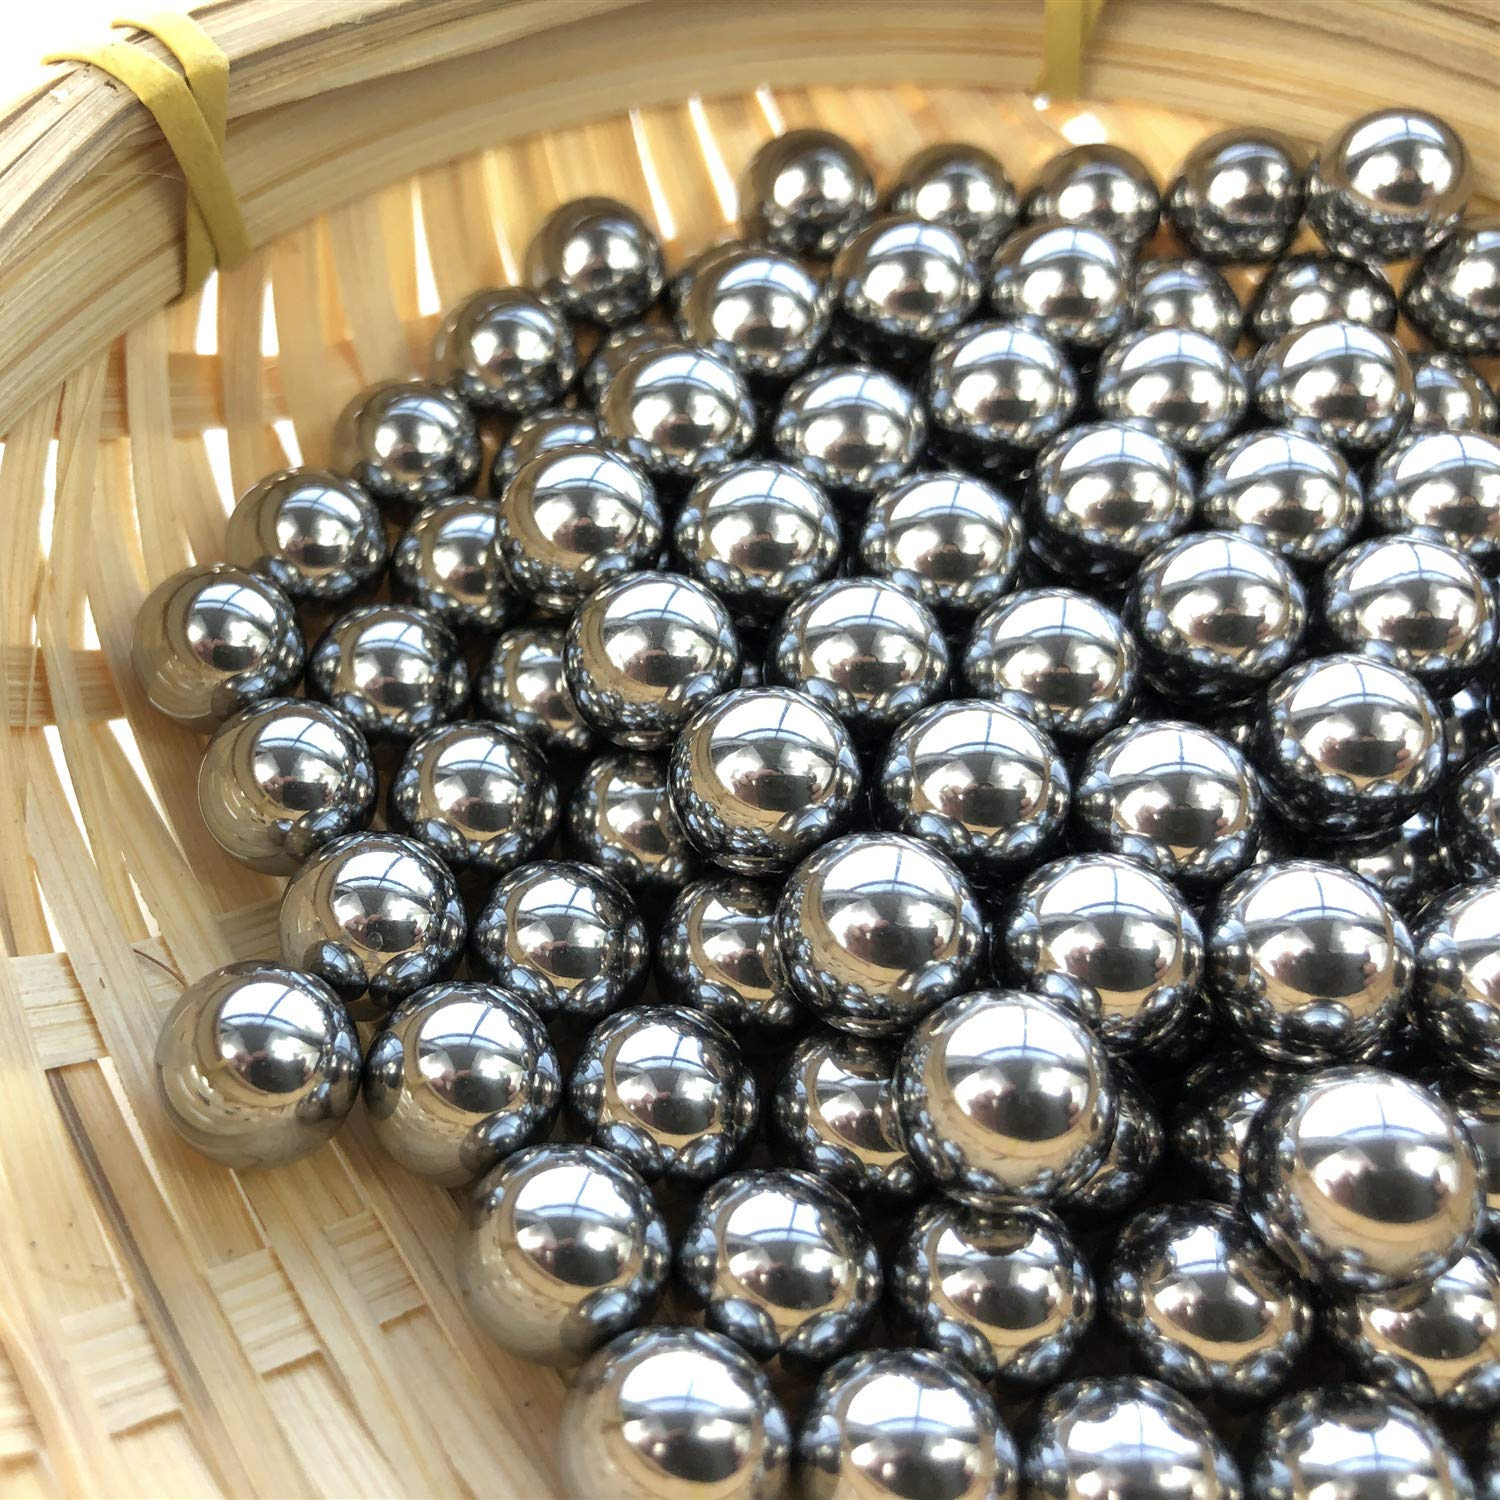 Hanchen Stainless Steel Grinding Balls Media Beads 250g Lab Ball Mill Grinding Media for Lab Planetary Ball Mill (1mm, 440) by Hanchen (Image #8)